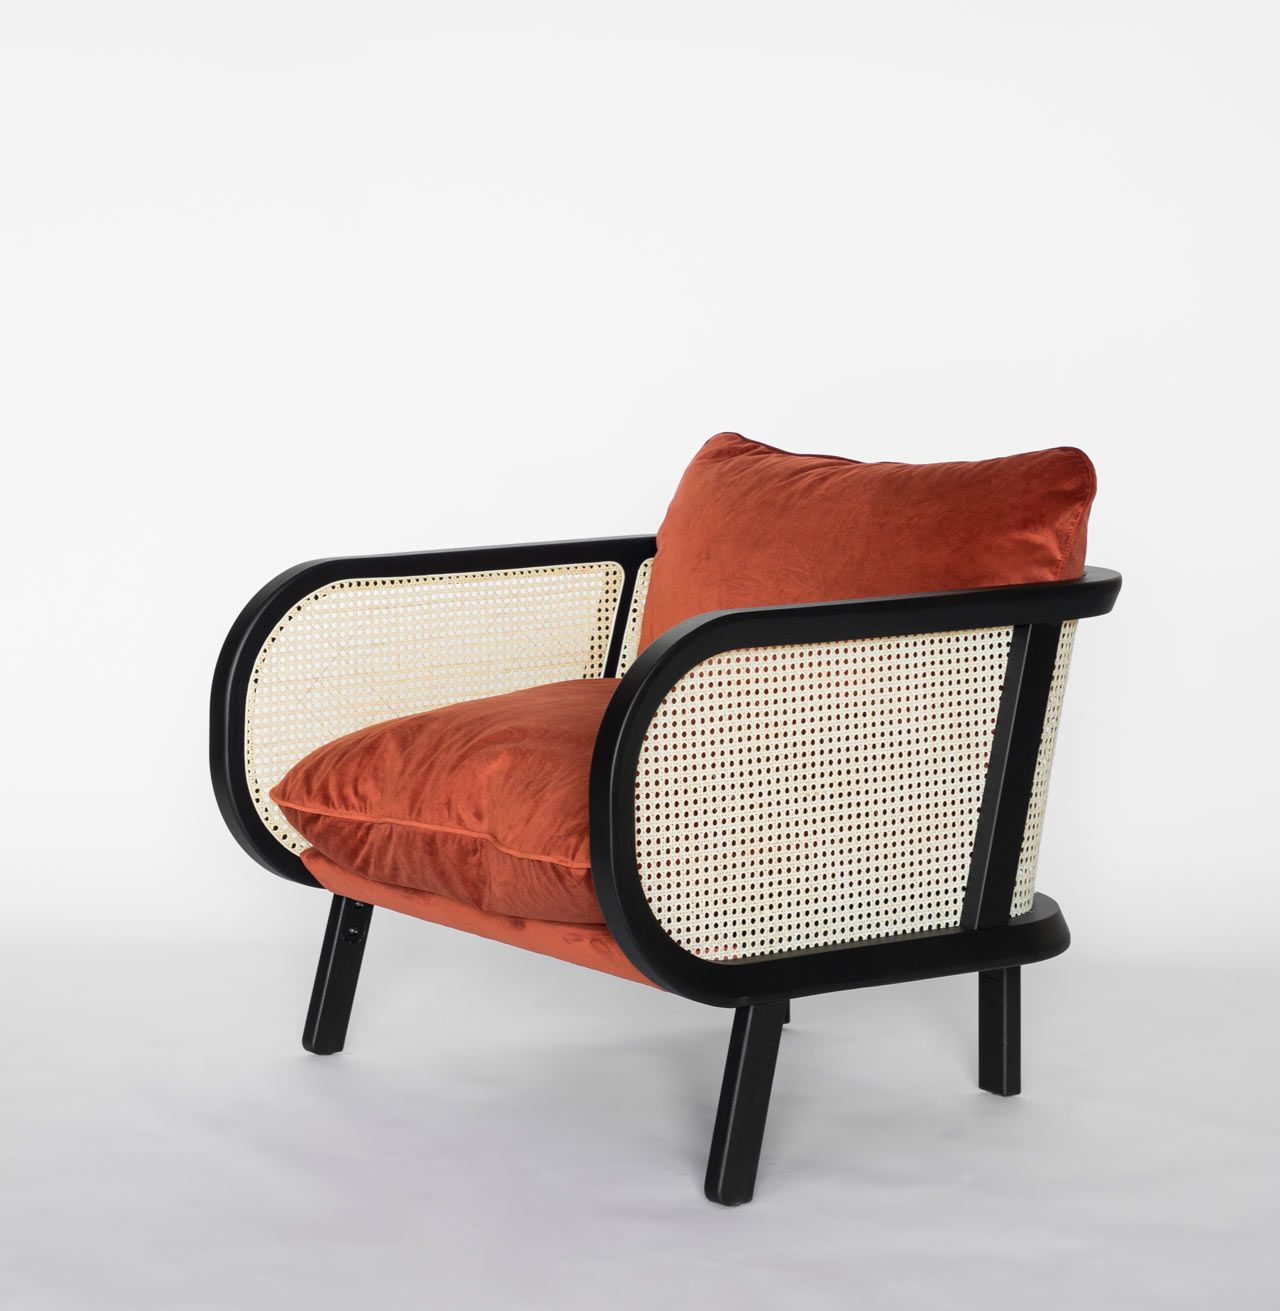 Best Buzzicane Modern Seating With Traditional Woven Cane 400 x 300